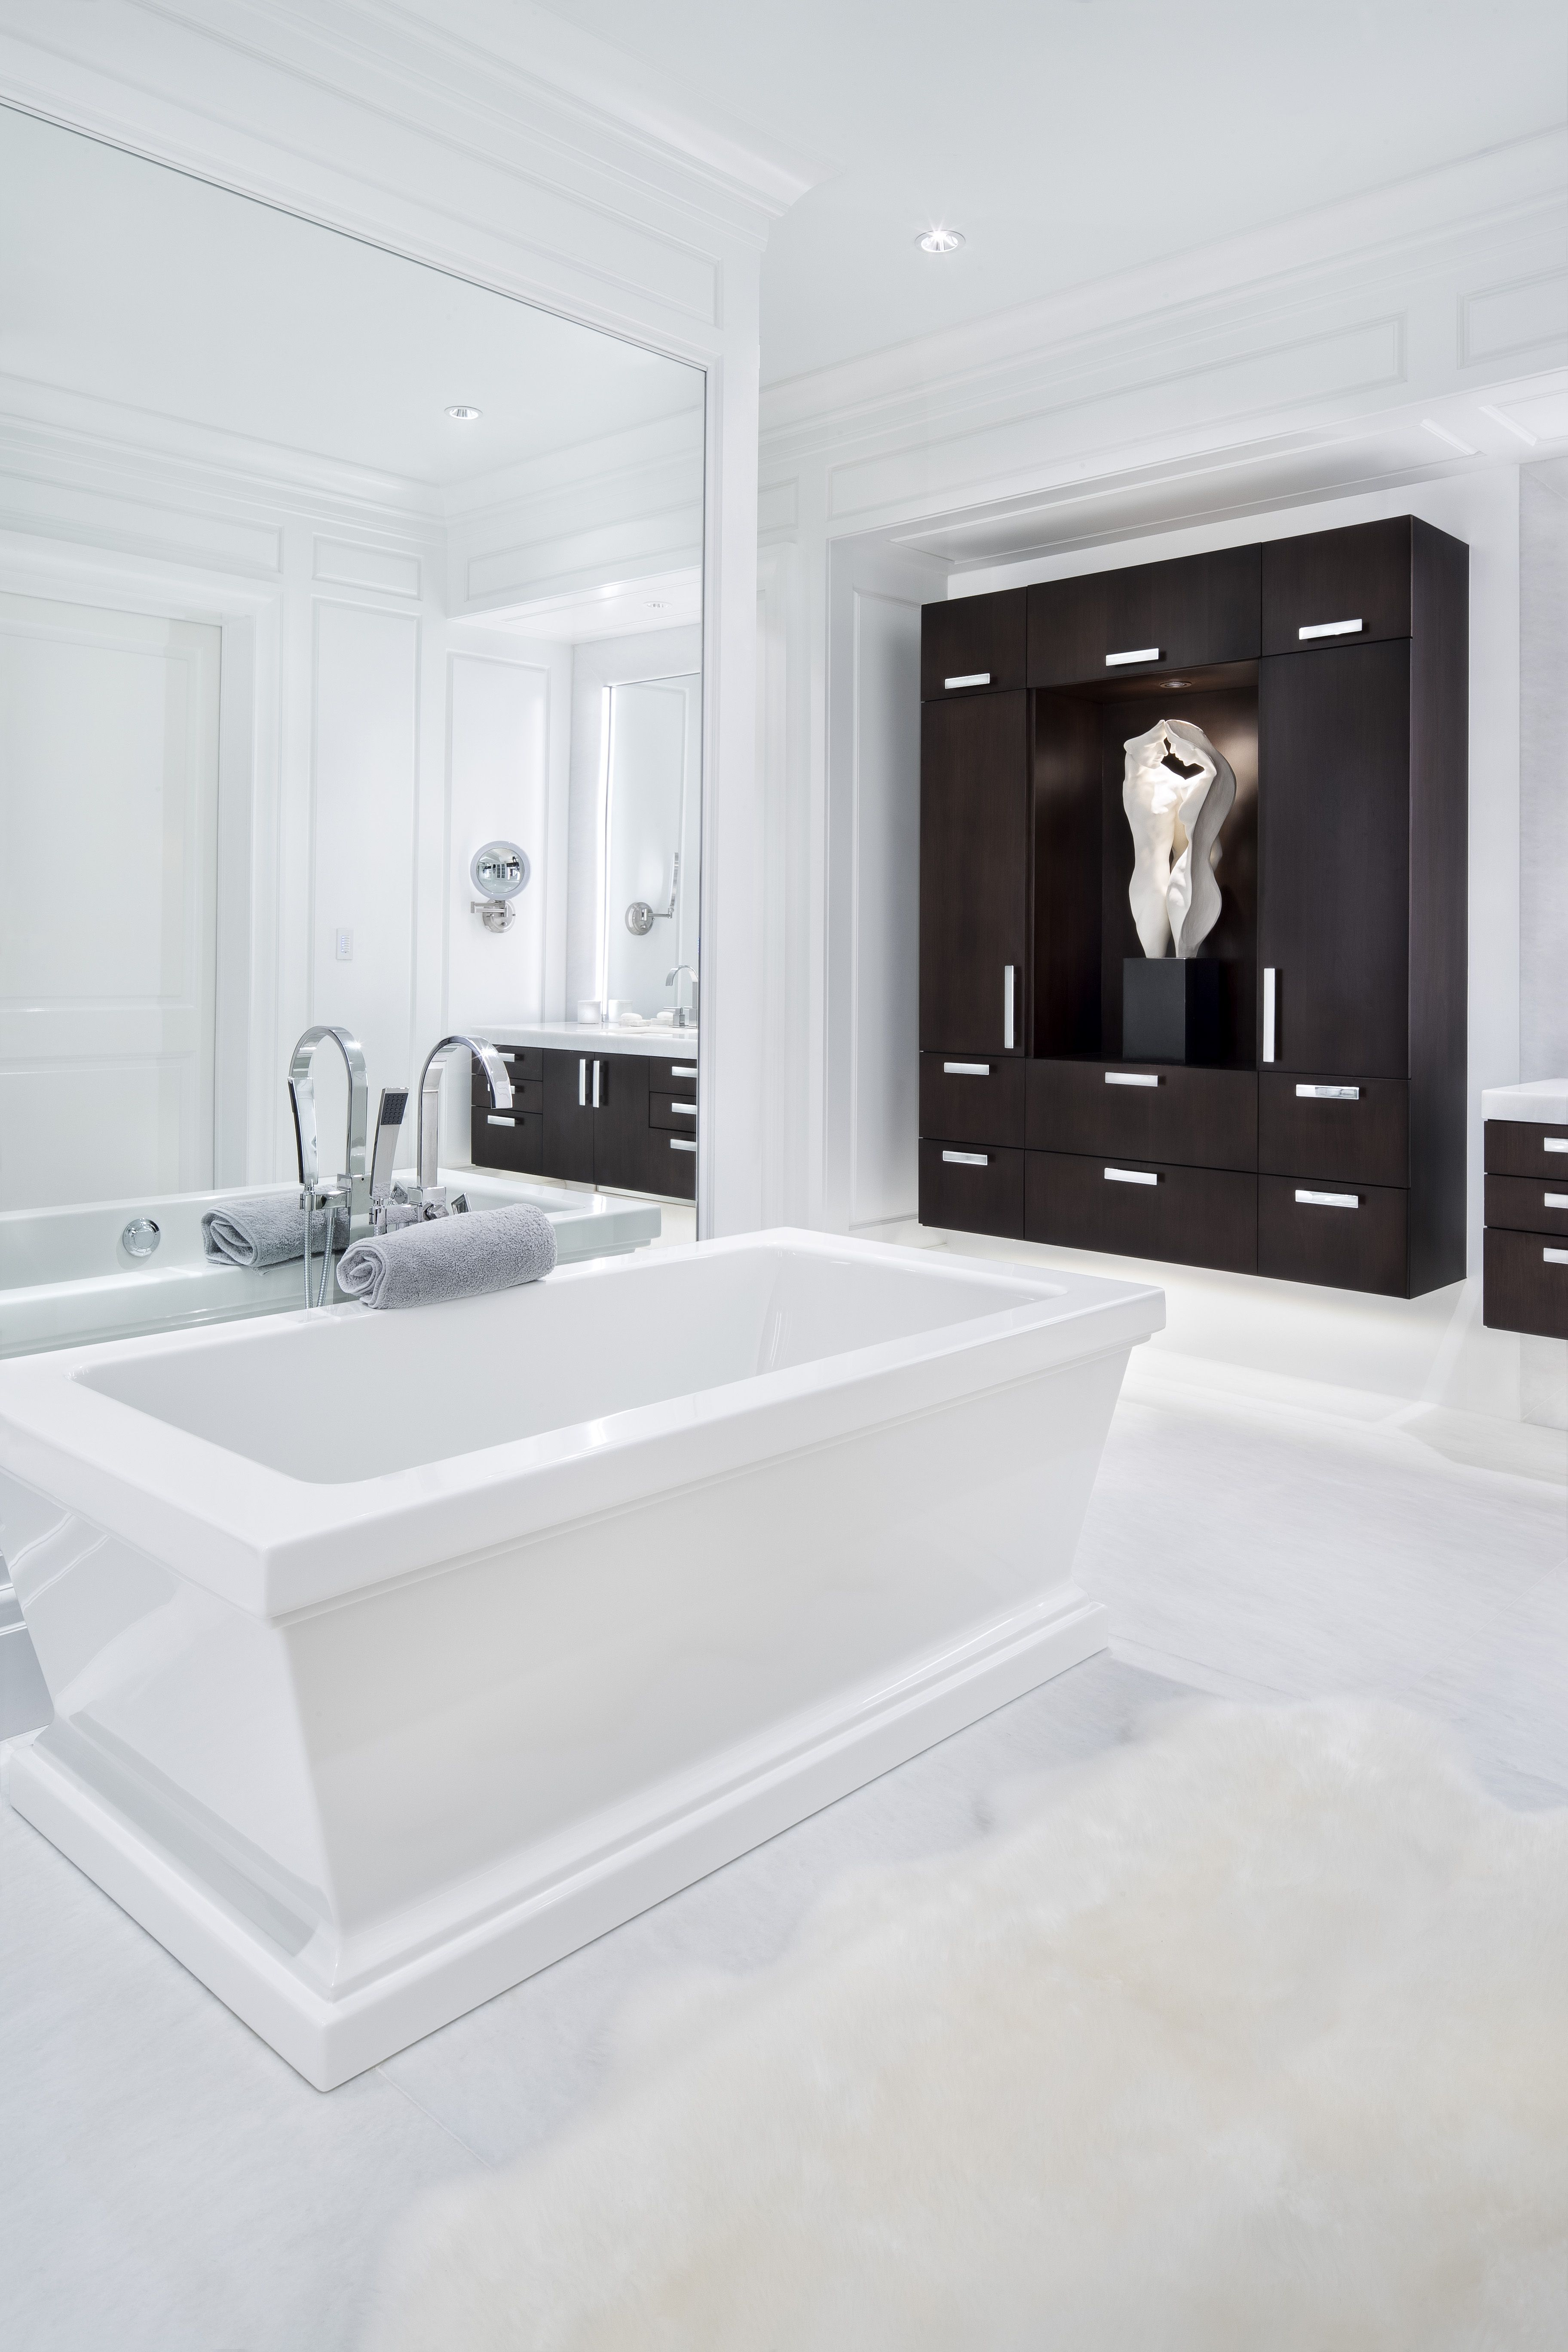 Pin By Jauregui Architect On Jauregui Bathrooms With Images